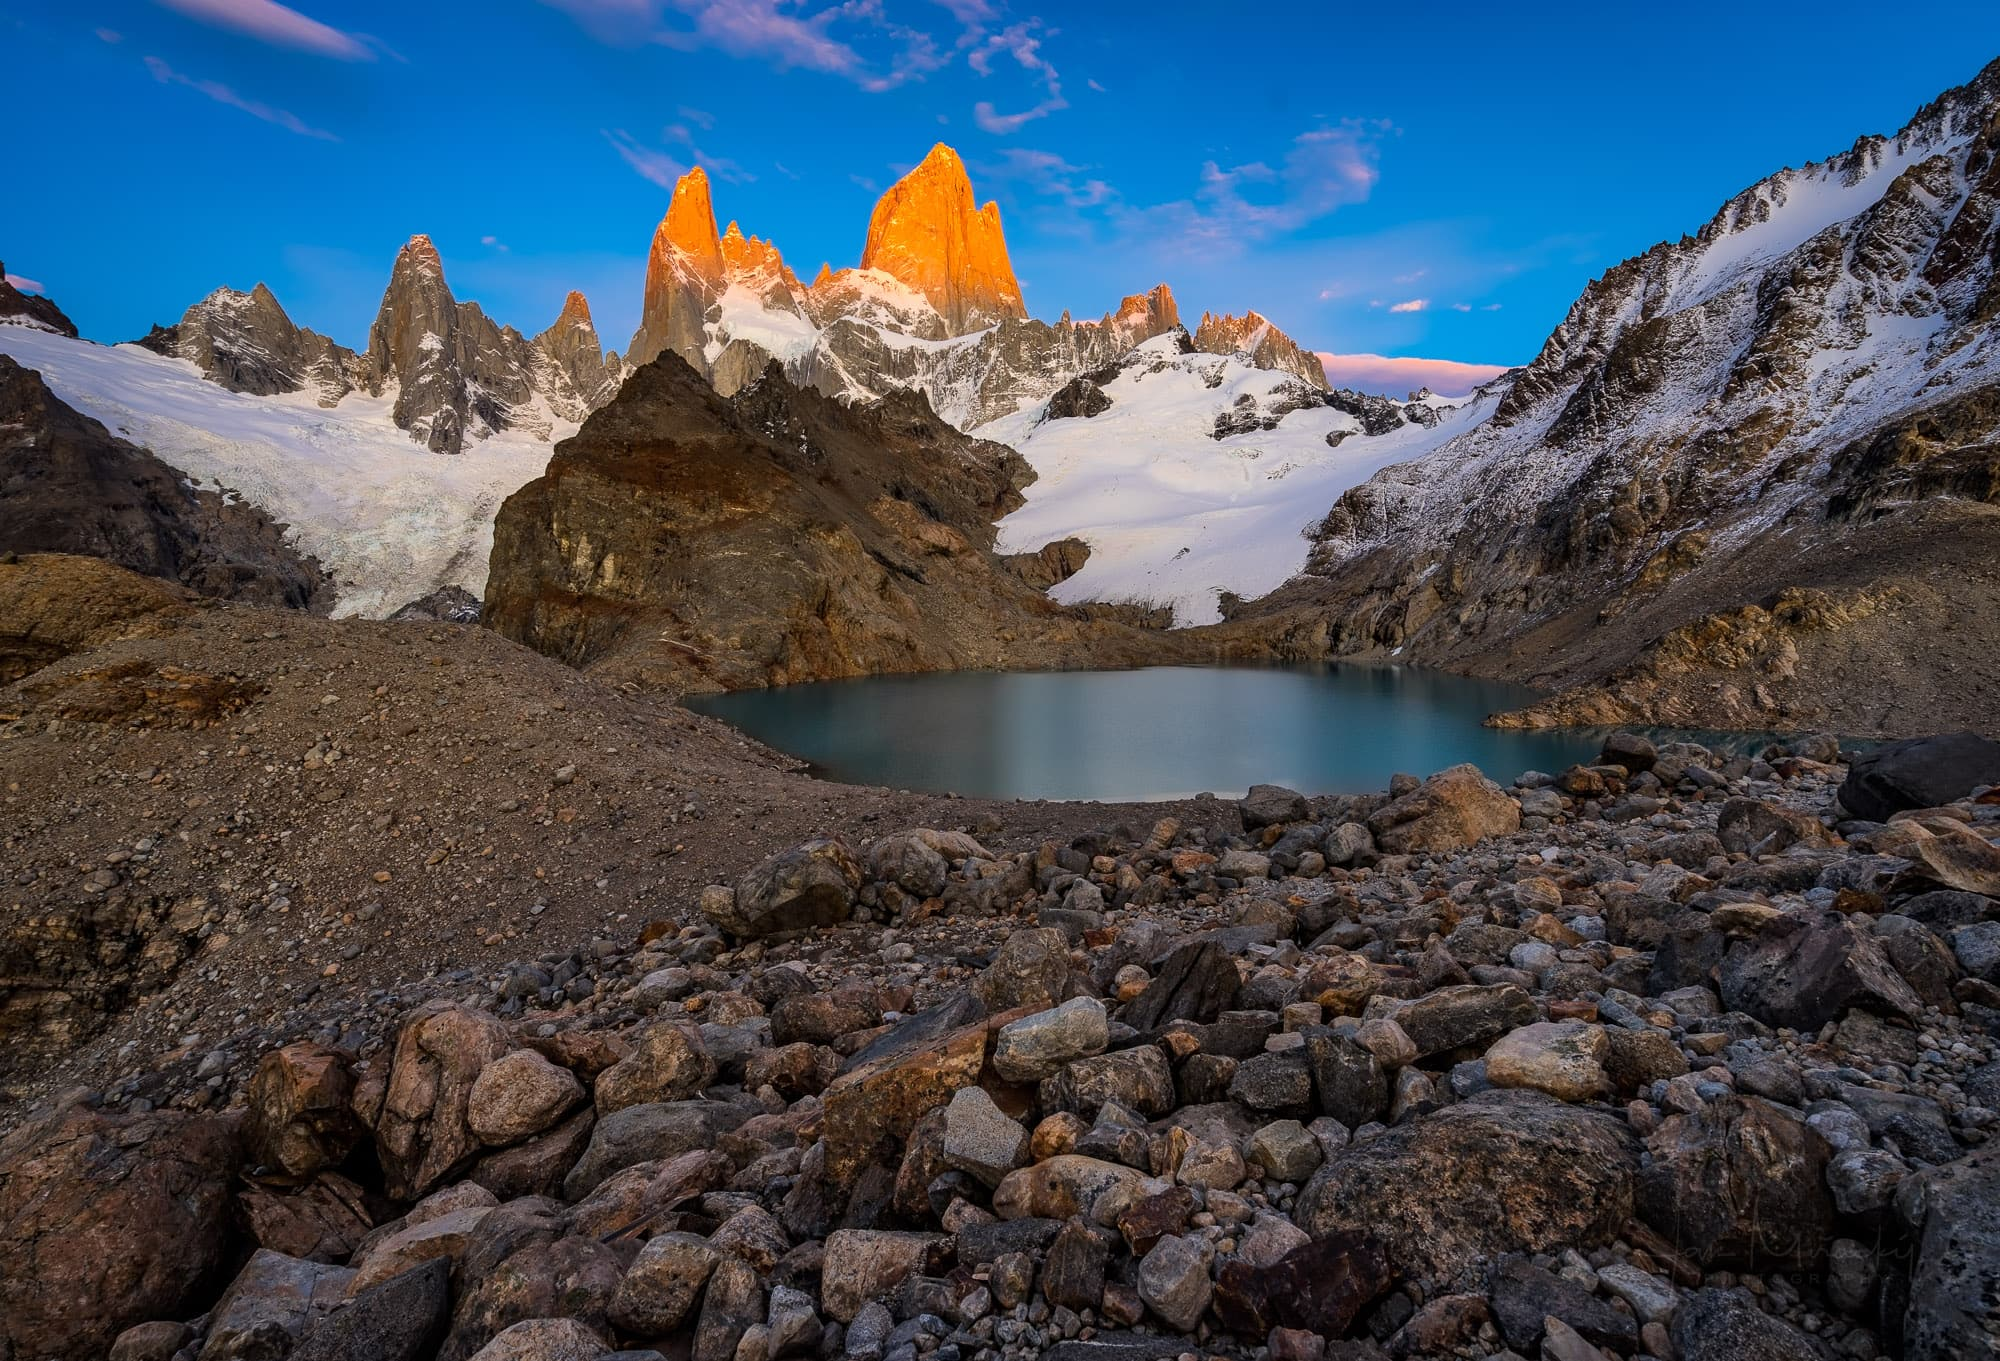 Sunrise at Lago de los Tres with a view of Fitz Roy